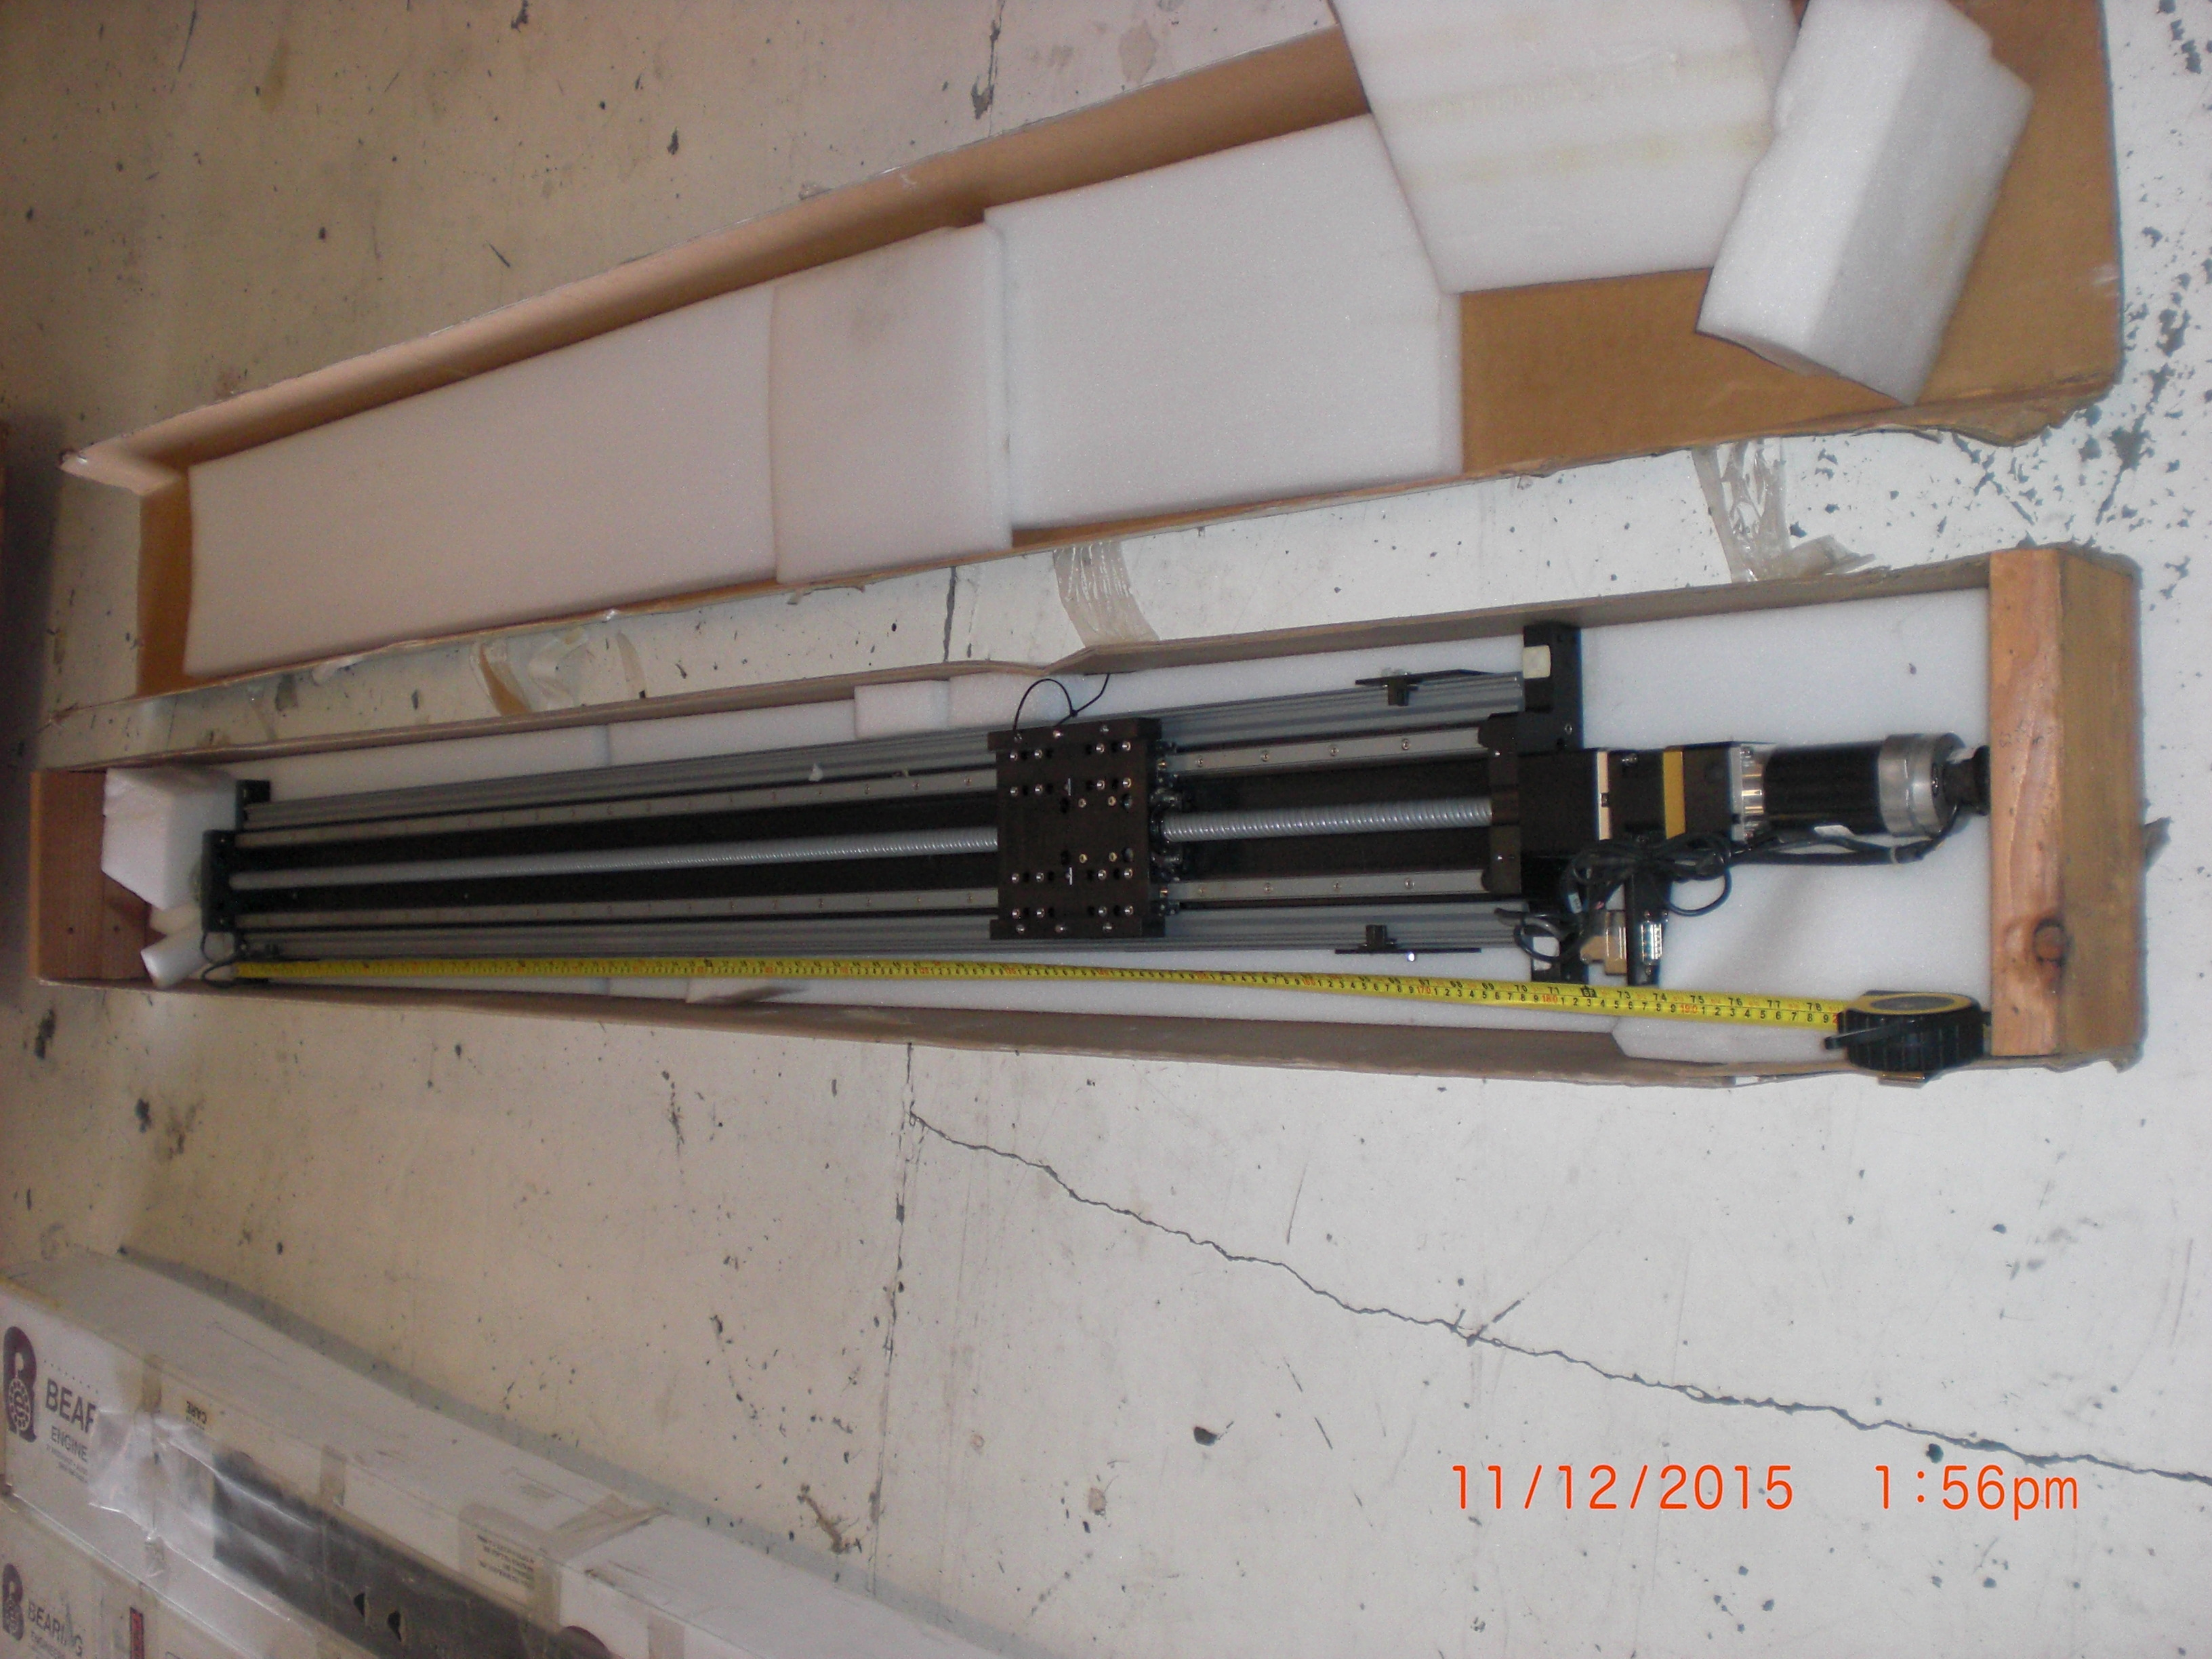 Actuator Linear Stage Heavy Duty - 62in travel, 6 X 6in table BEARING ENGINEERS C-00319